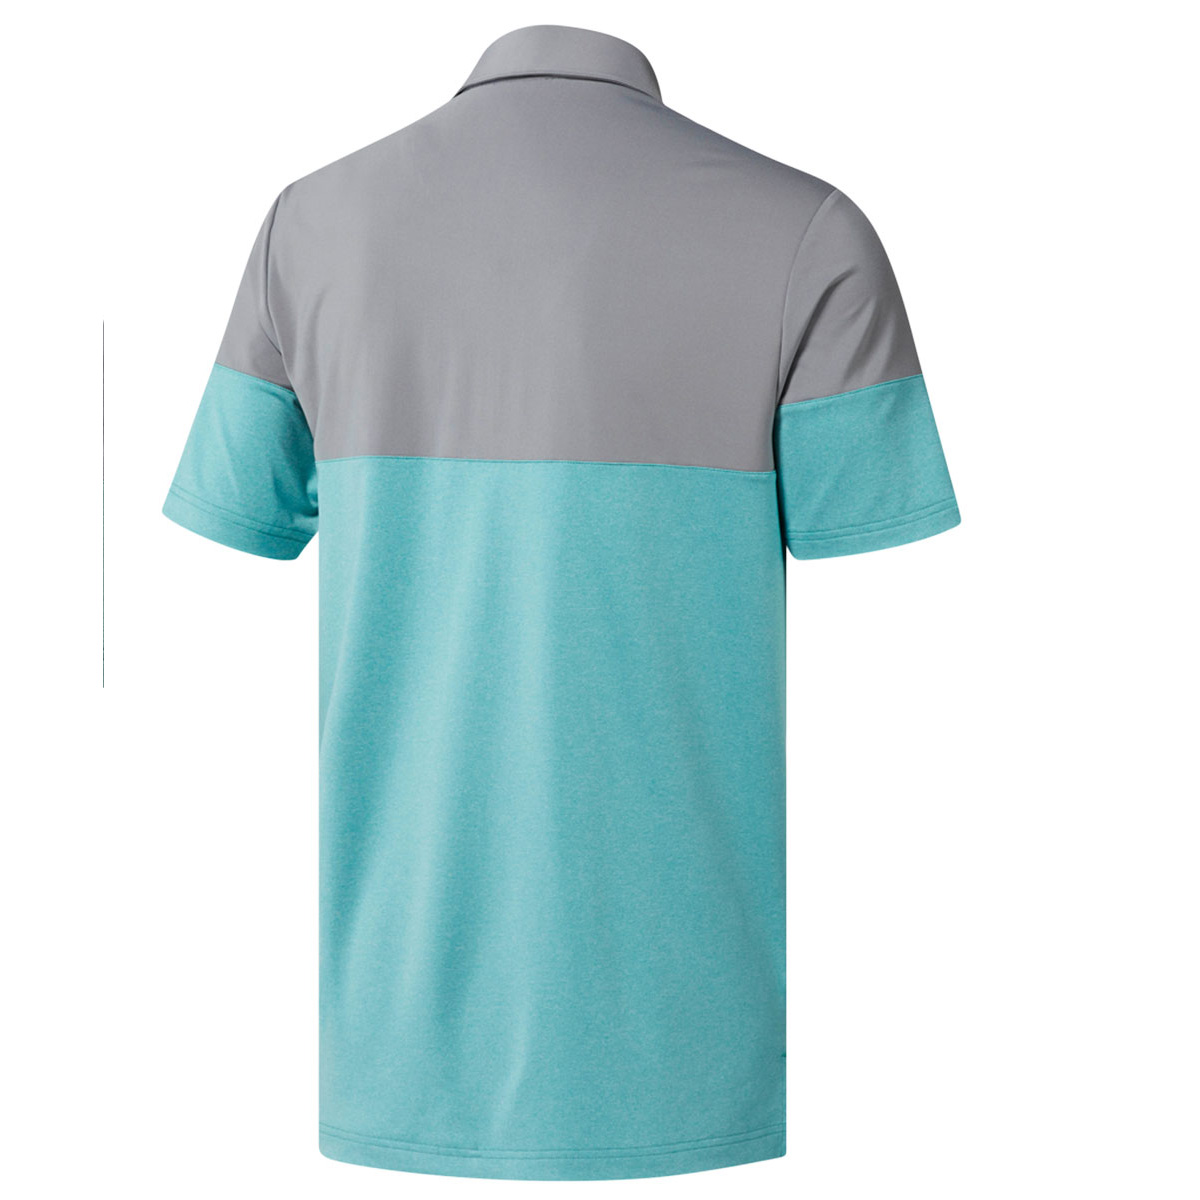 Adidas-Golf-Men-039-s-Ultimate-2-0-All-Day-Polo-Shirt-New thumbnail 7